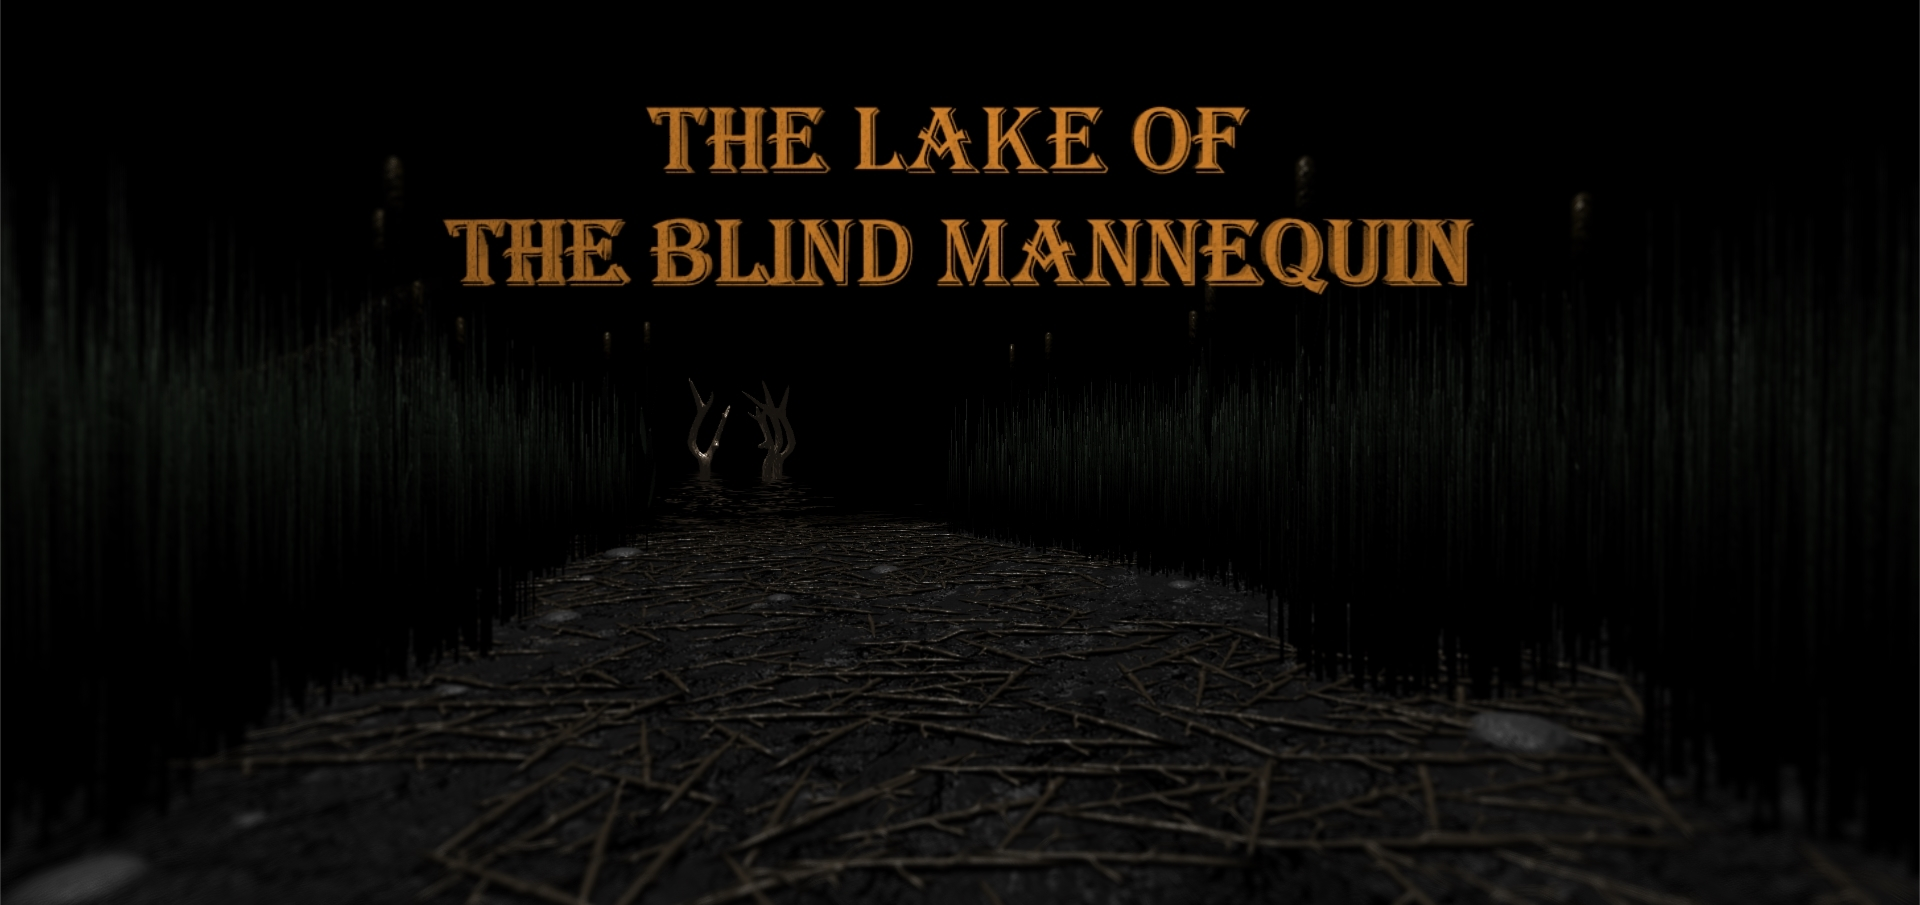 The Lake Of The Blind Mannequin